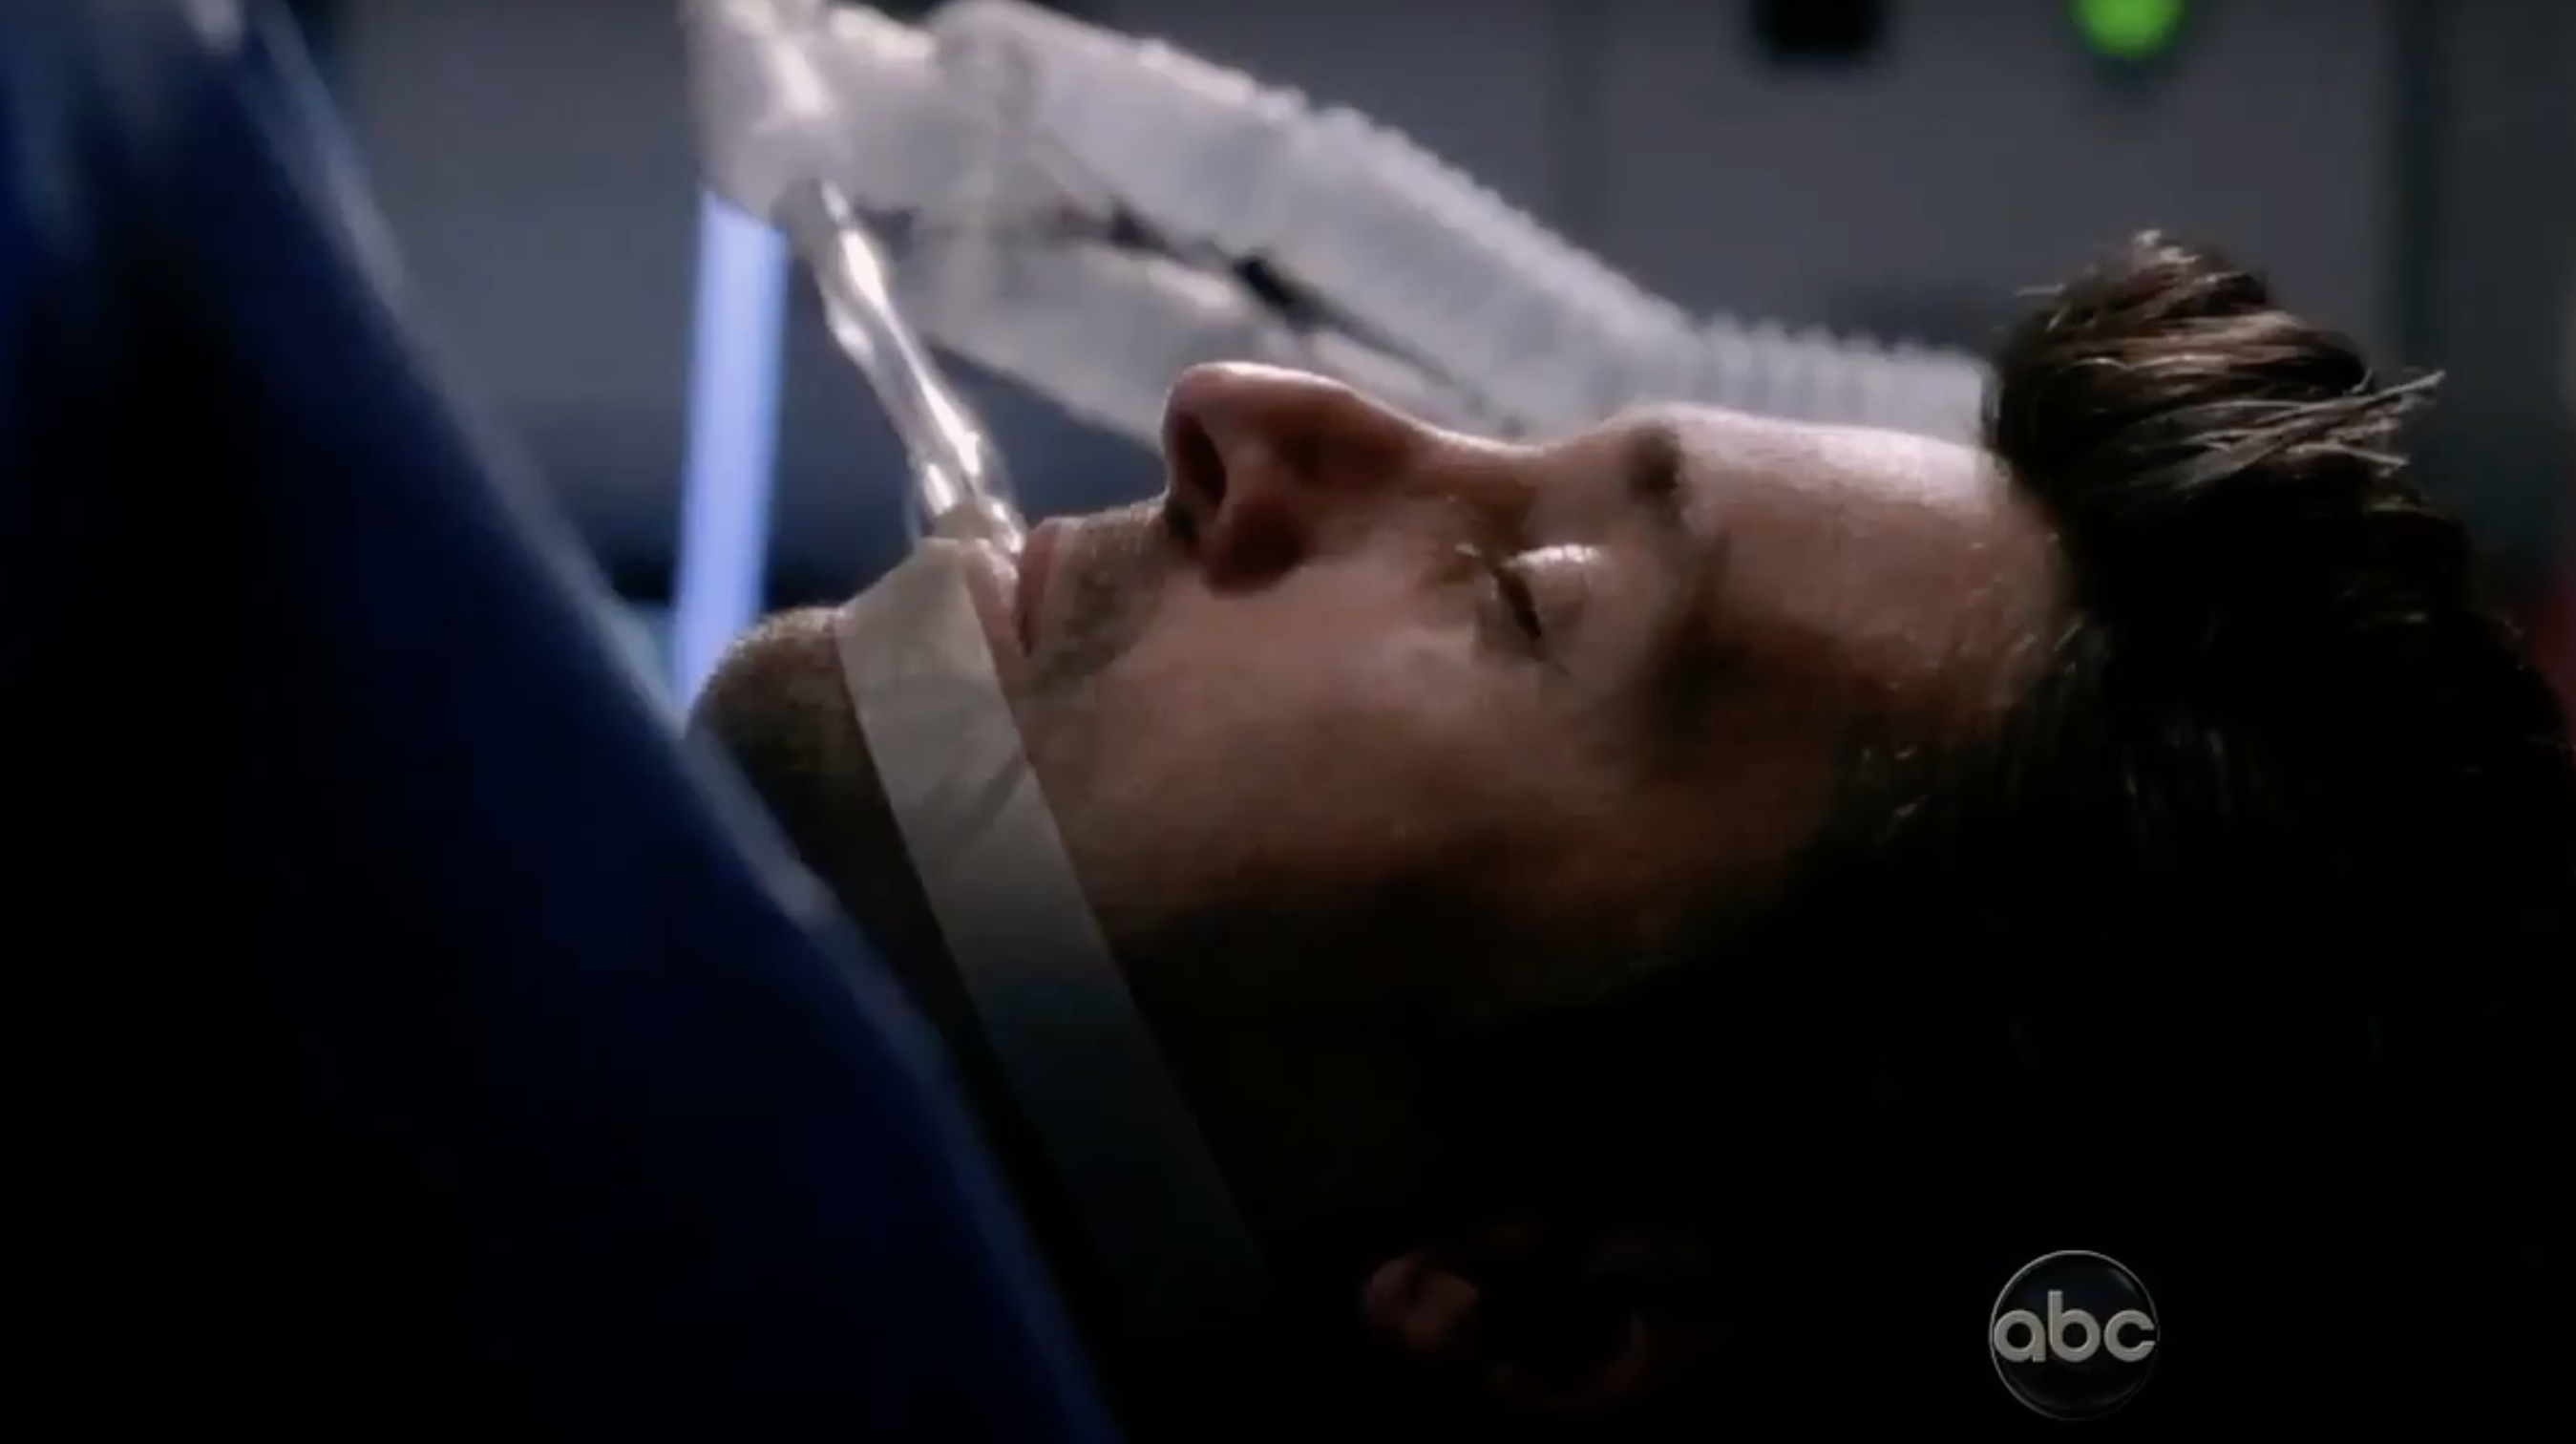 """Patrick Dempsey's character being operated on in """"Grey's Anatomy"""""""